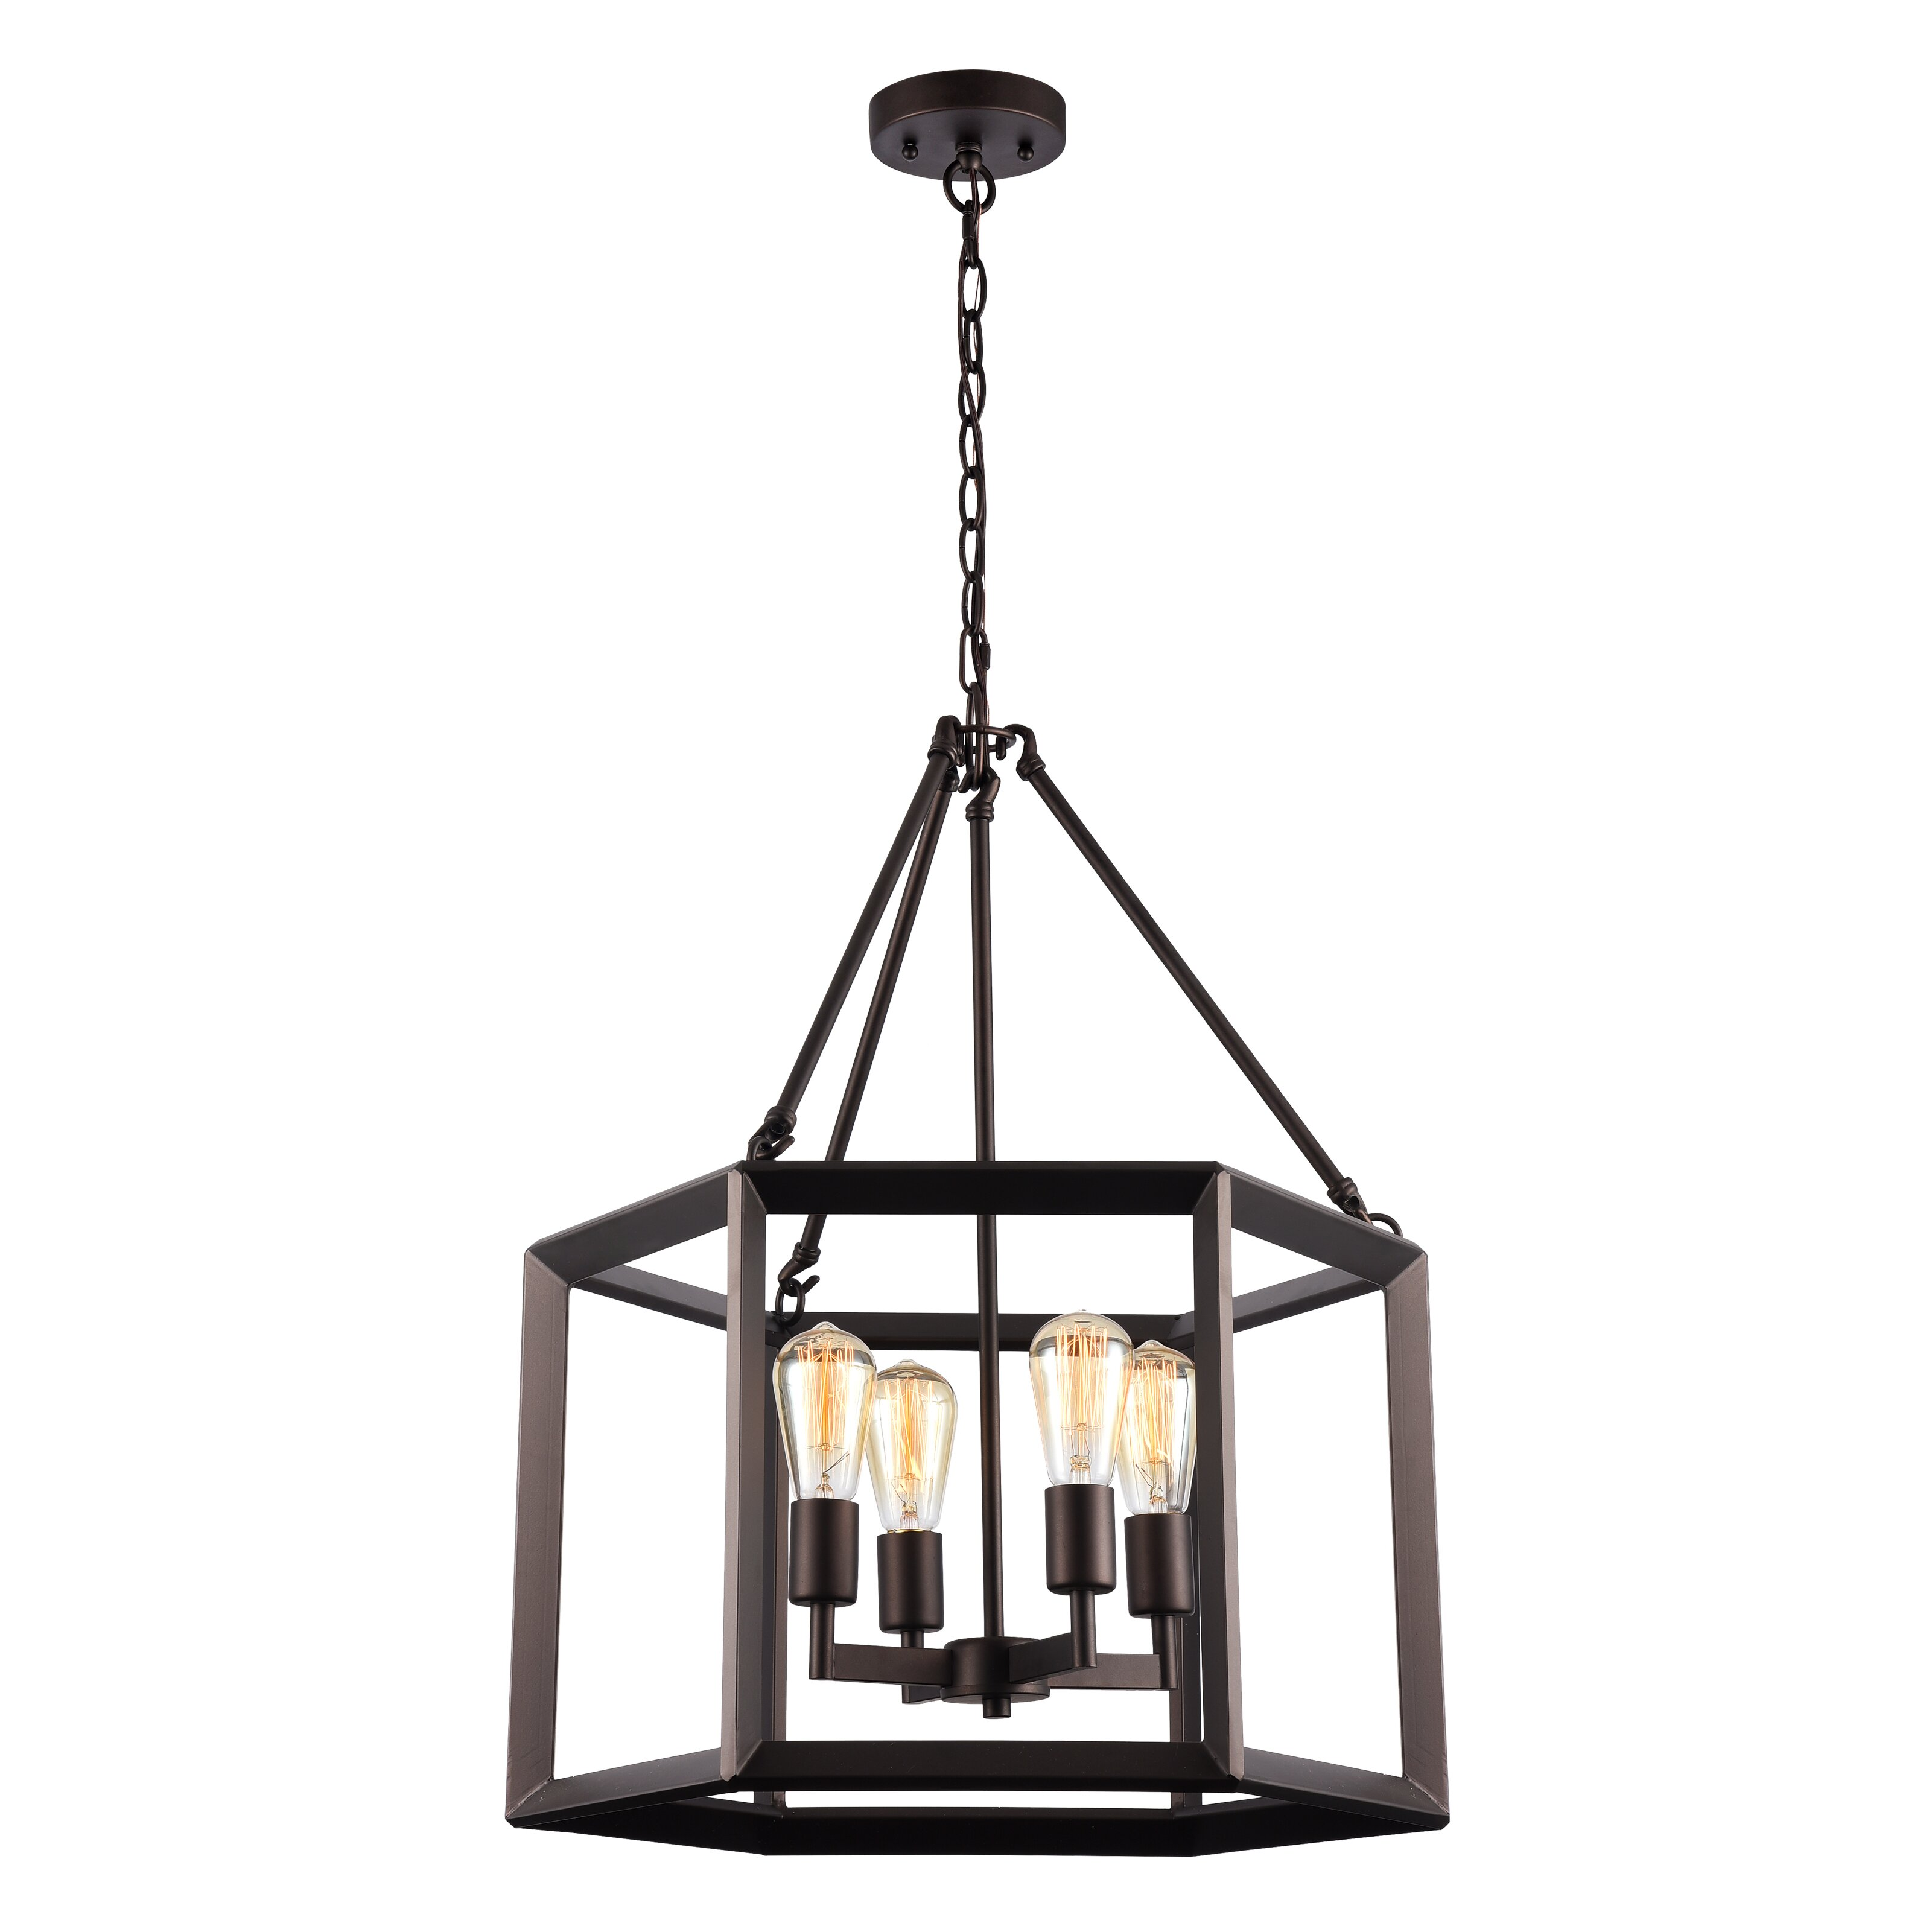 Automatic Lighting Di together with Crystorama Ashton 9 Light Chandelier 5019 EB CL MWP CRT3809 furthermore Lighting Plan also 4521 Tatlin Sofa Edra together with Round Metal Umbrella Stand. on lighting for living rooms ceiling